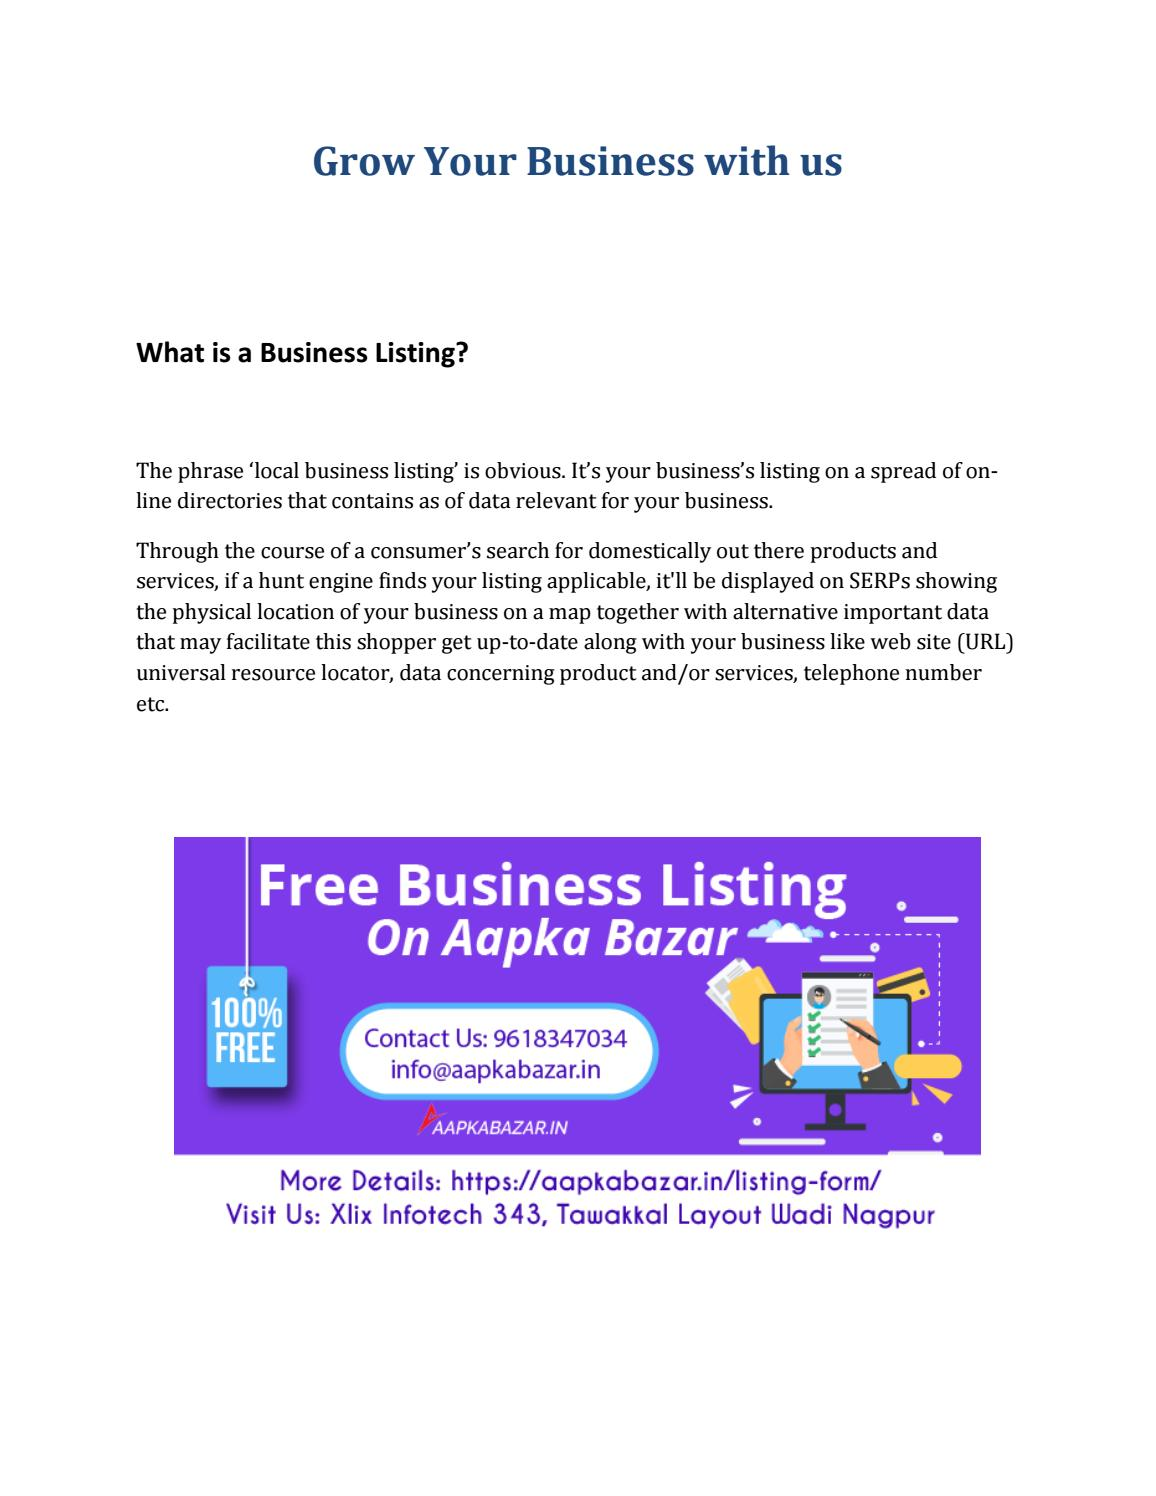 Free Business Listing India | Business Directory by aapkabazar12345